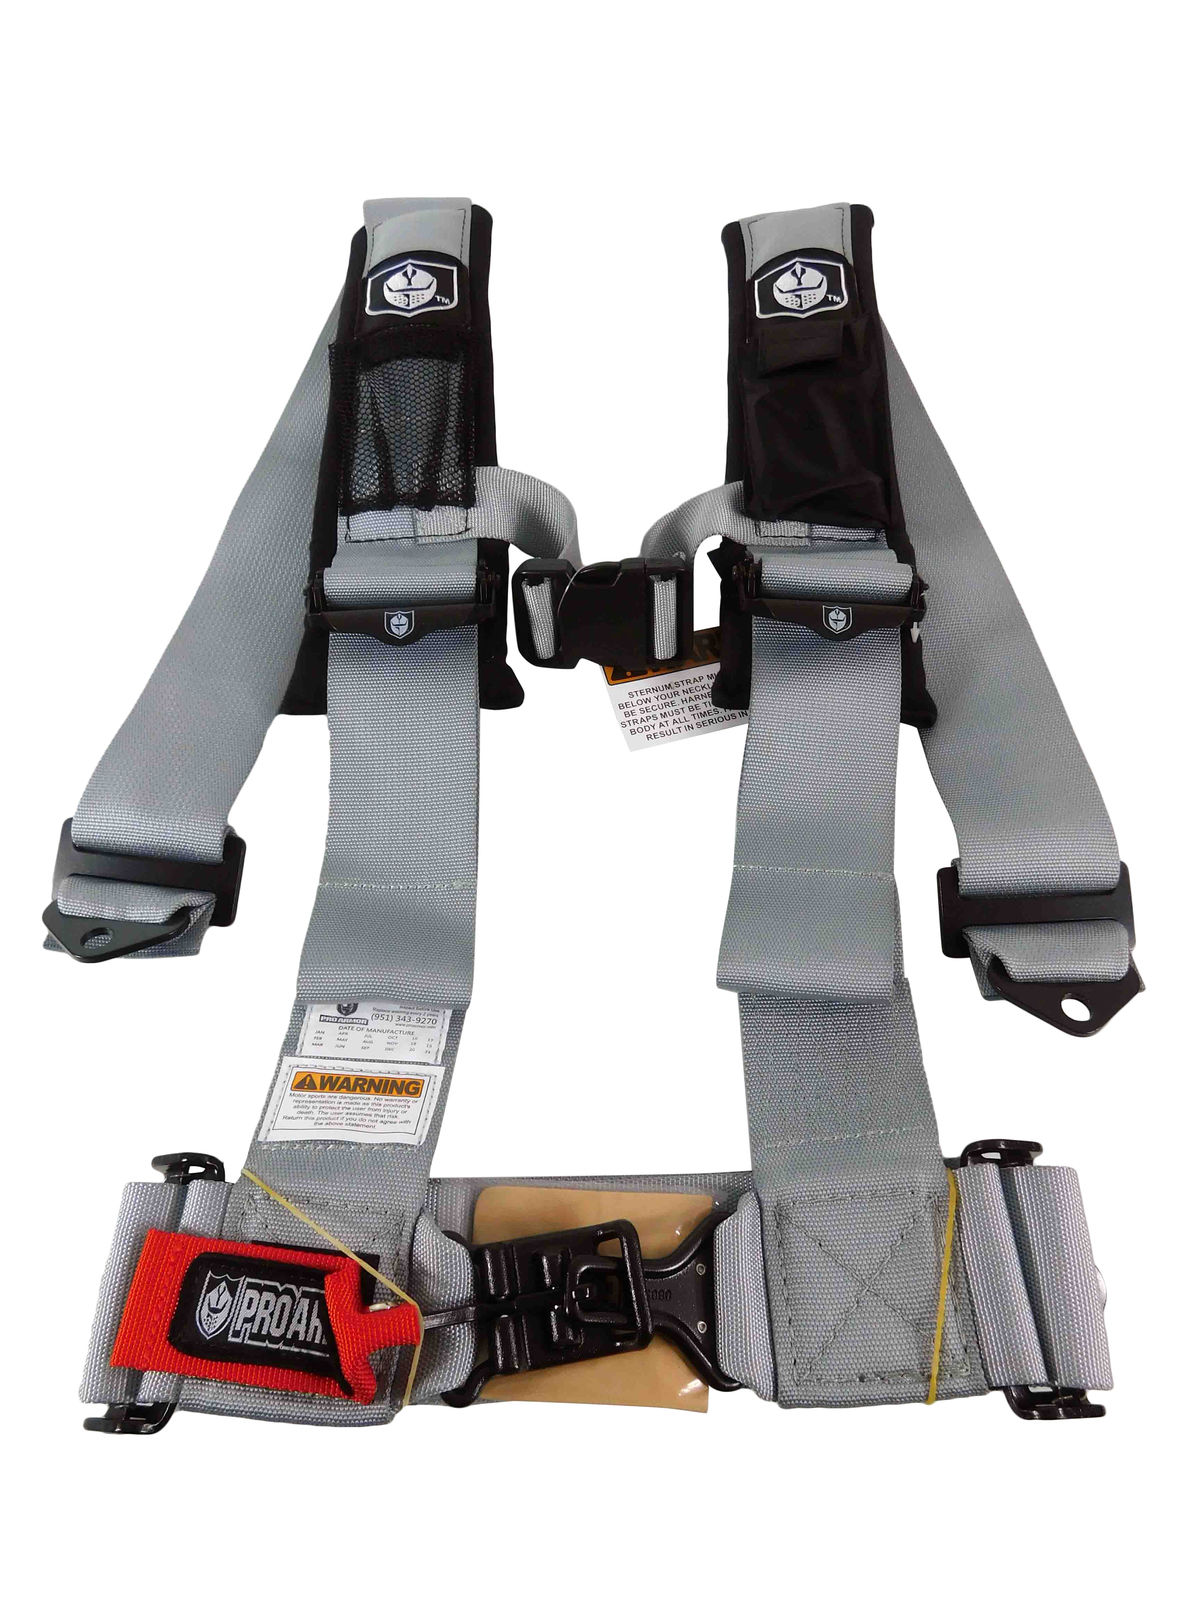 Pro-Armor-A114230ORx2-P151100-4-Point-3-Harness-w-Override-Clip-Silver-2-PACK-image-2